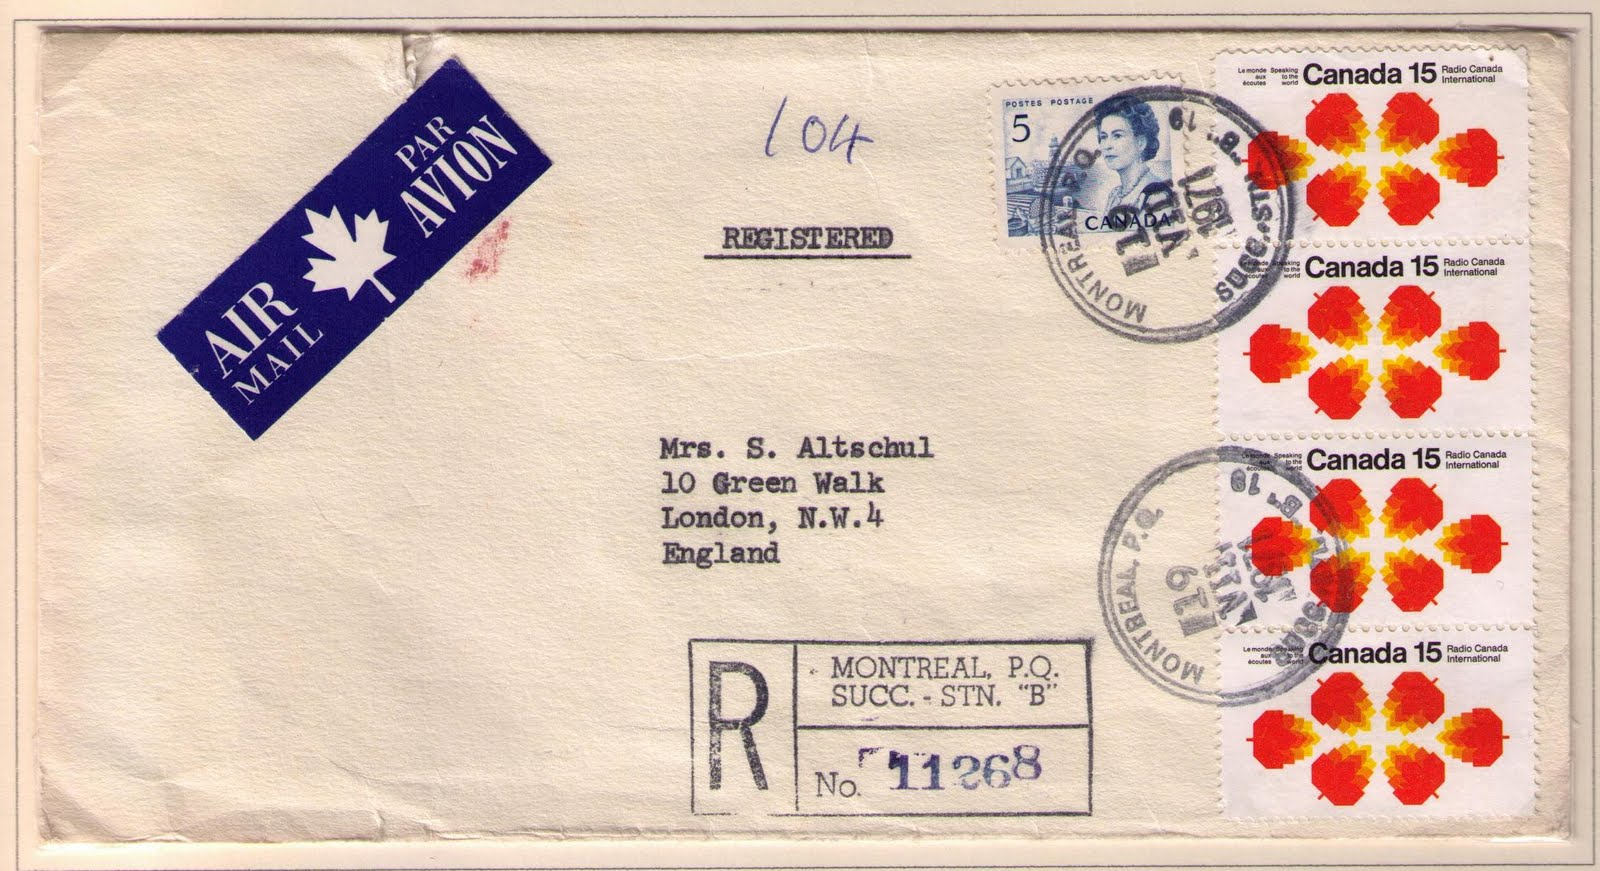 montreal to london july 19 1971 15 cents international air mail letter rate 50 cents registration fee